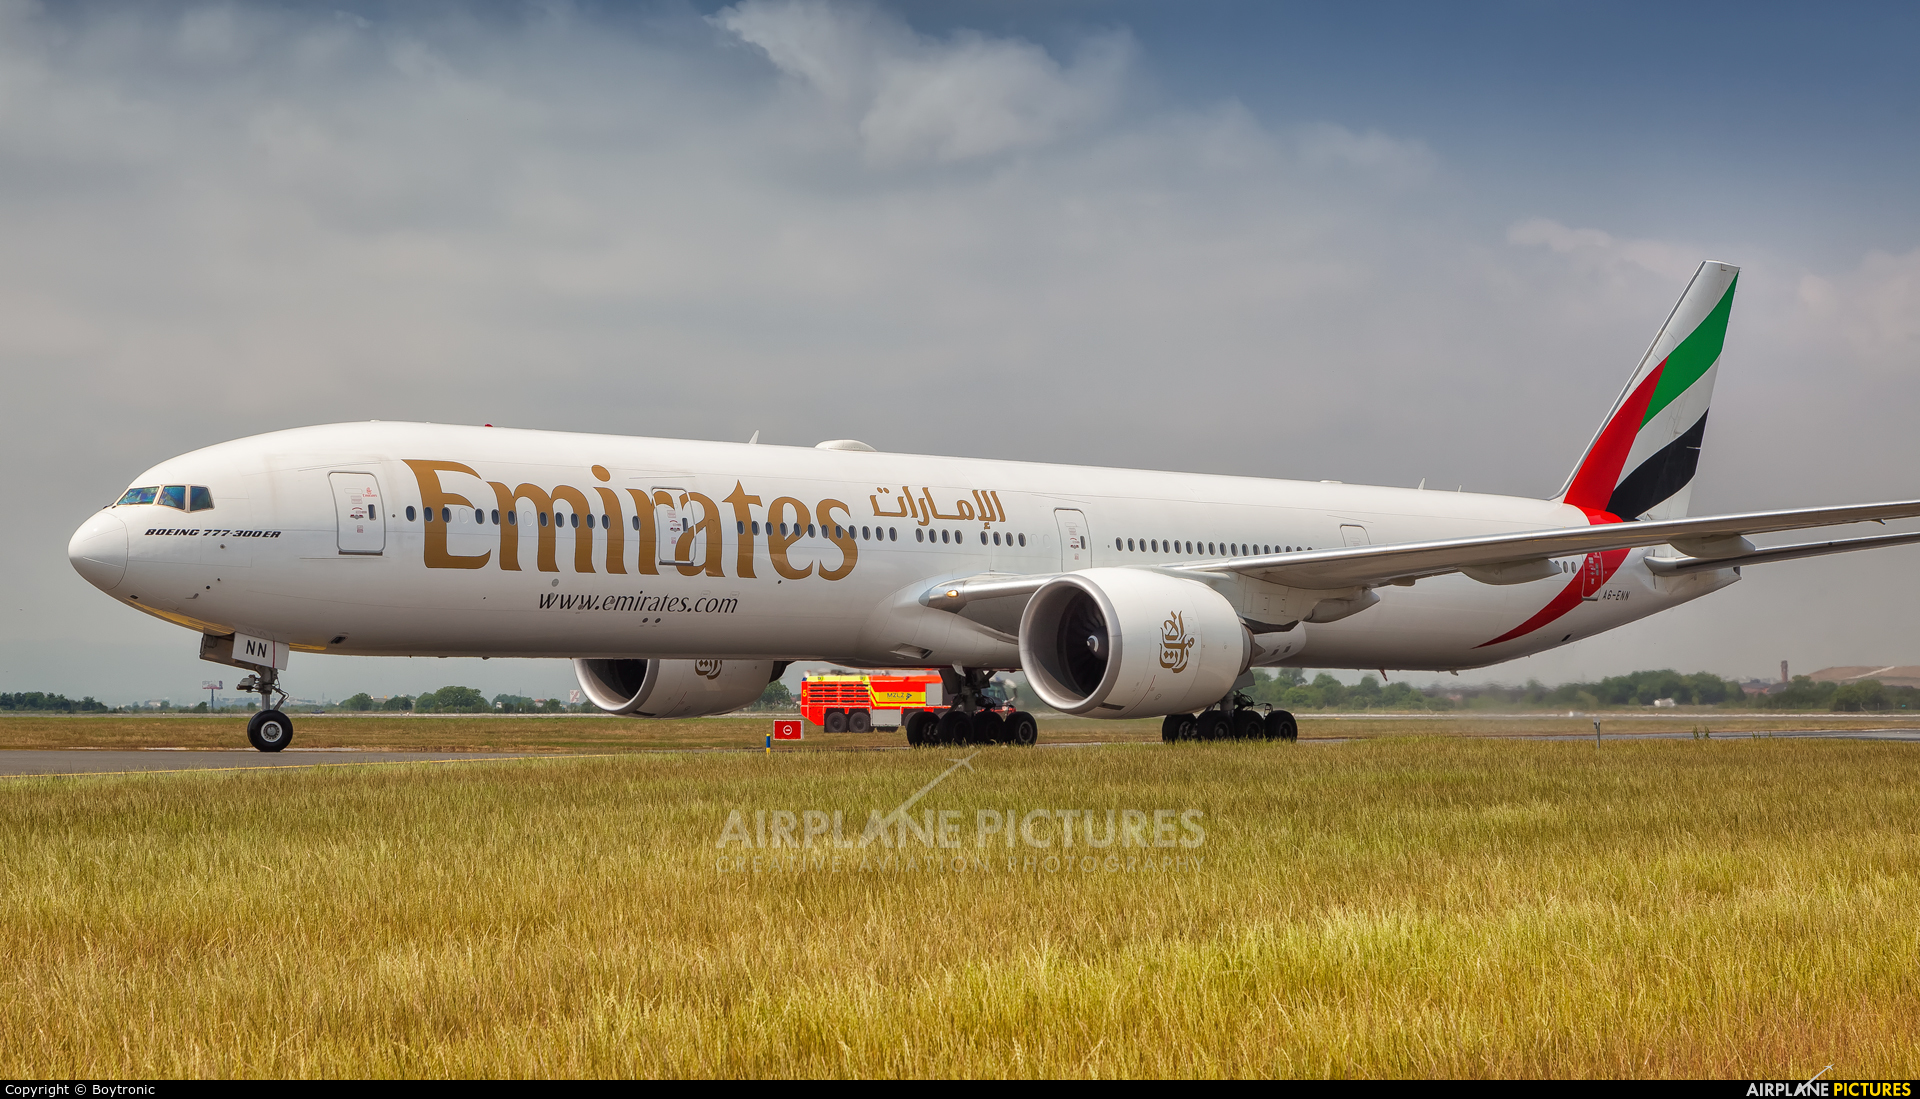 Emirates Airlines A6-ENN aircraft at Zagreb